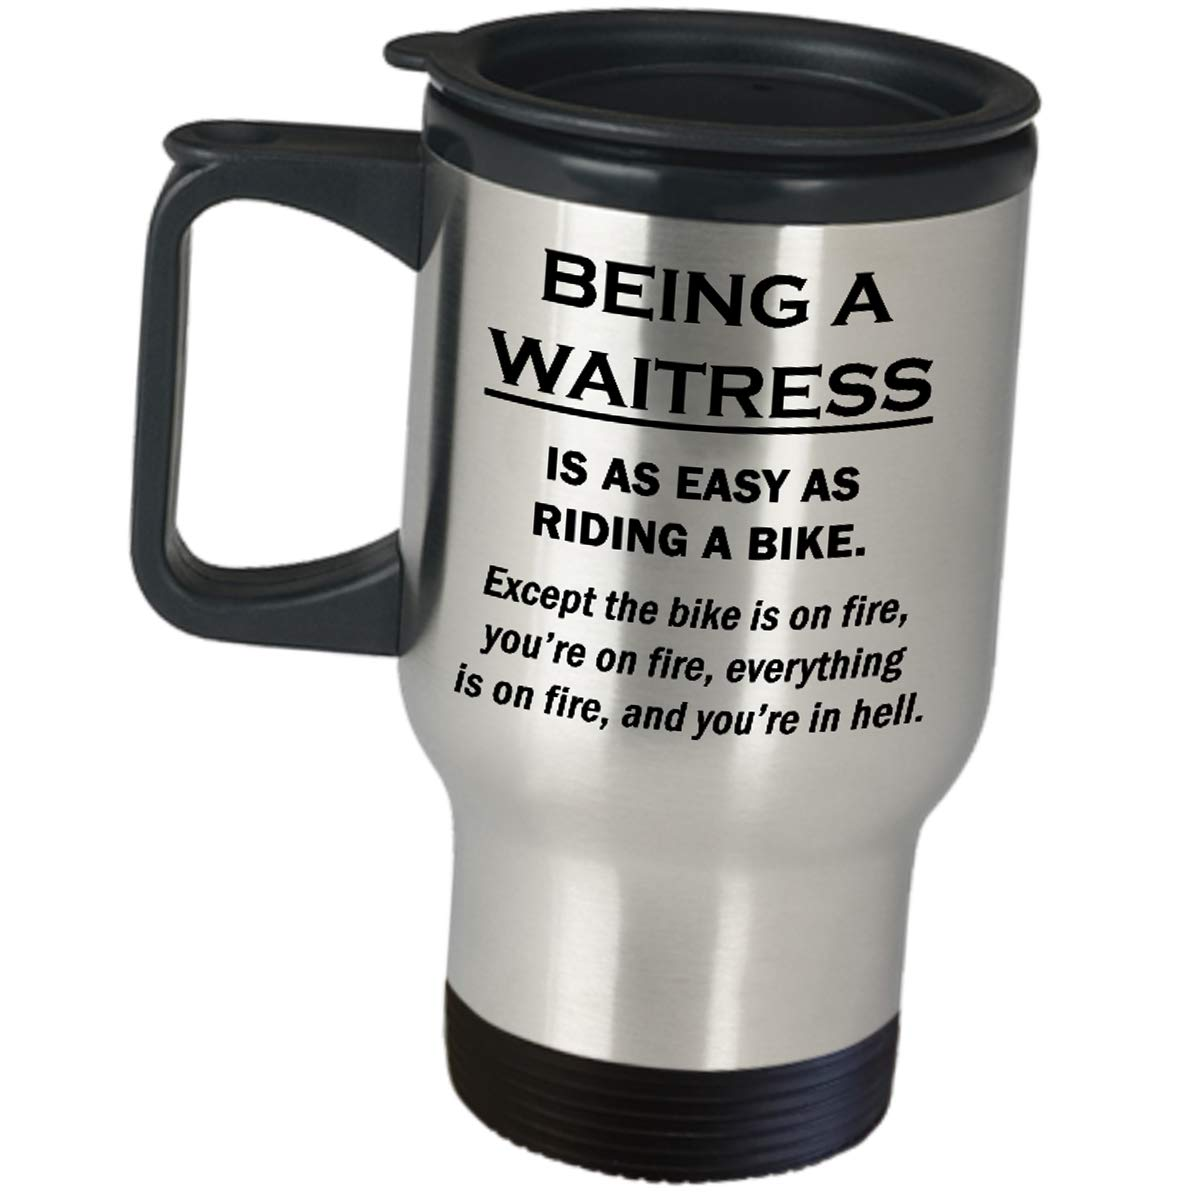 Waitress Travel Mug Gift - Riding A Bike On Fire - Stainless Steel Insulated Coffee Tumbler Fun Job Pride Gifts Restaurant Cafeteria Food Order Taker Appreciation For Women Server Funny Cute Gag